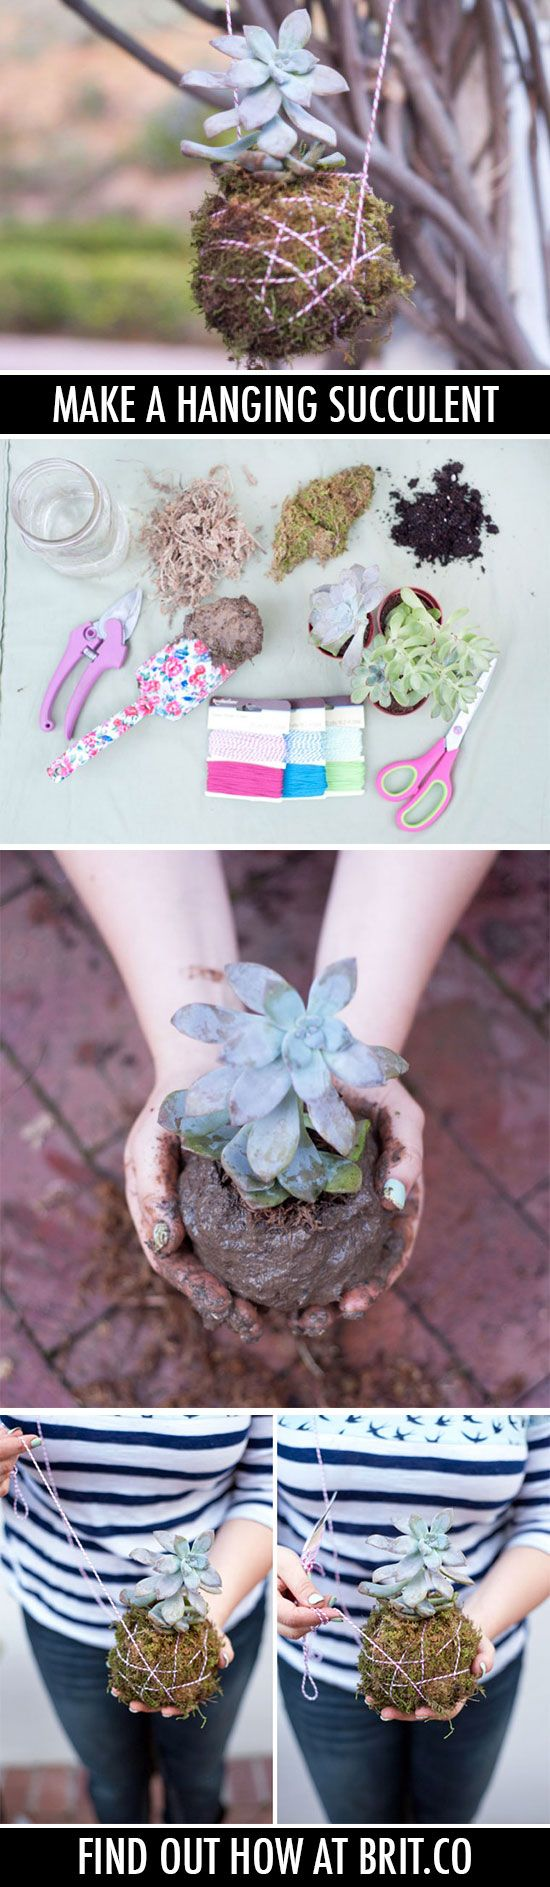 How to Make a Hanging Succulent | Brit + Co.